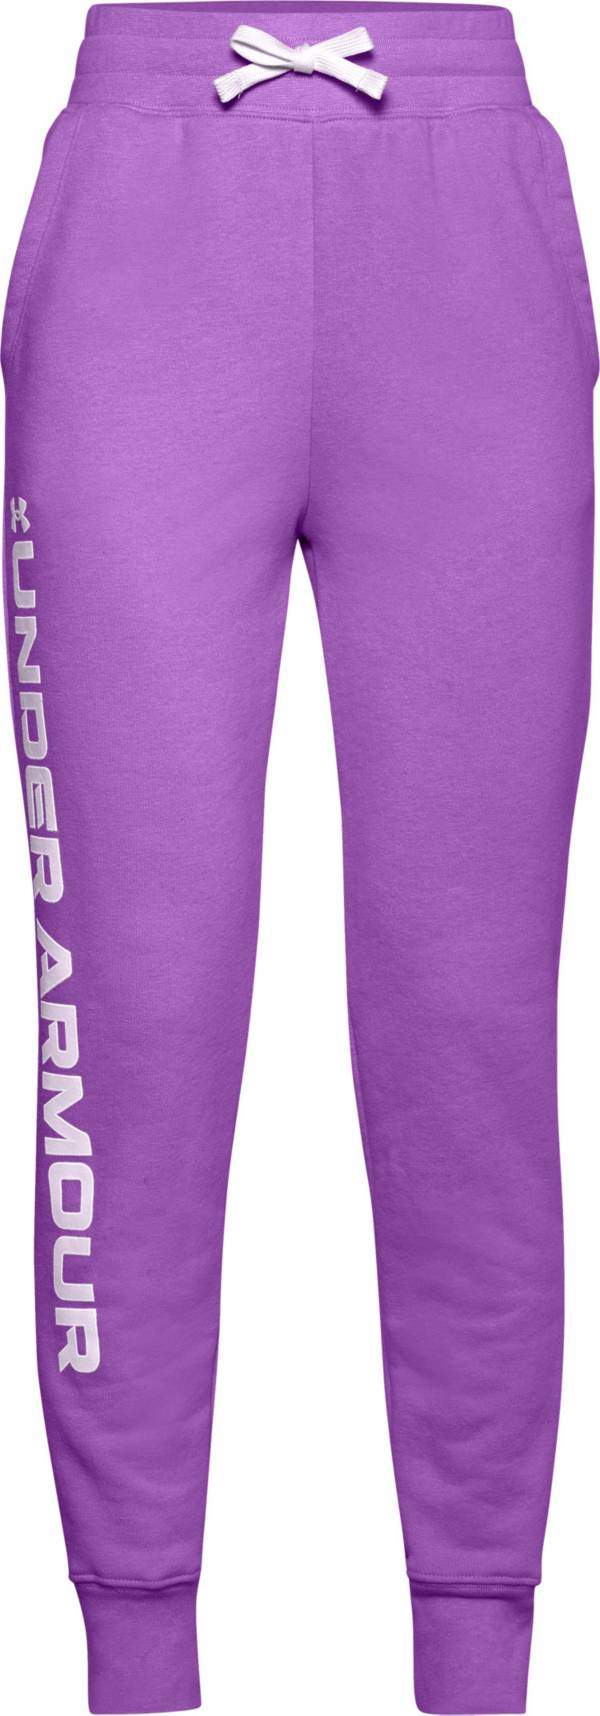 Under Armour Girls' Rival Fleece Joggers product image